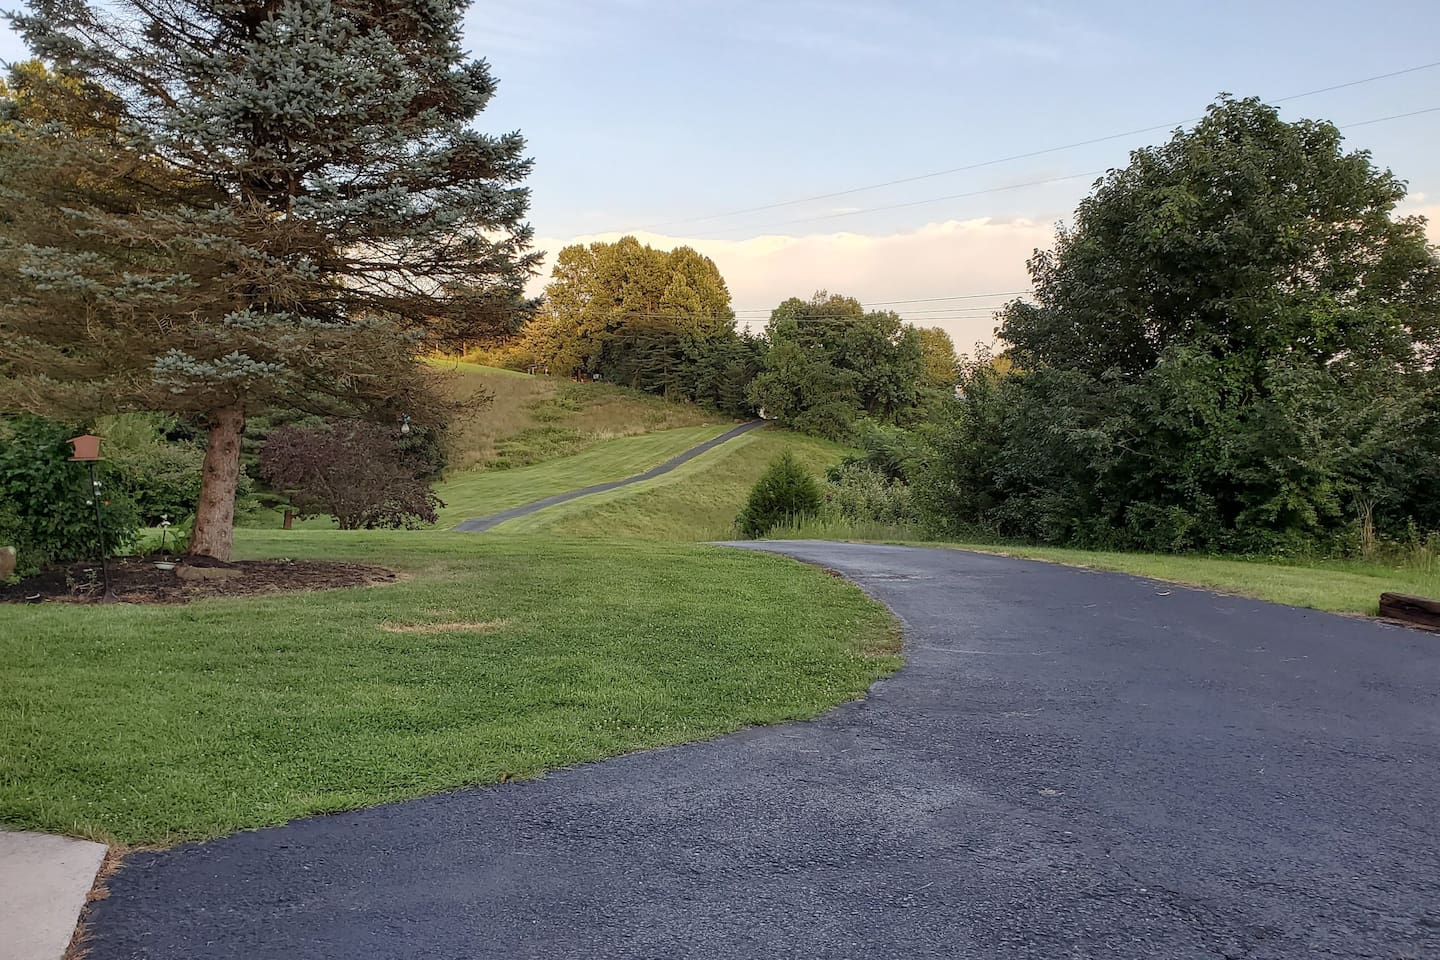 The Long Private Driveway leads to peace and quiet.